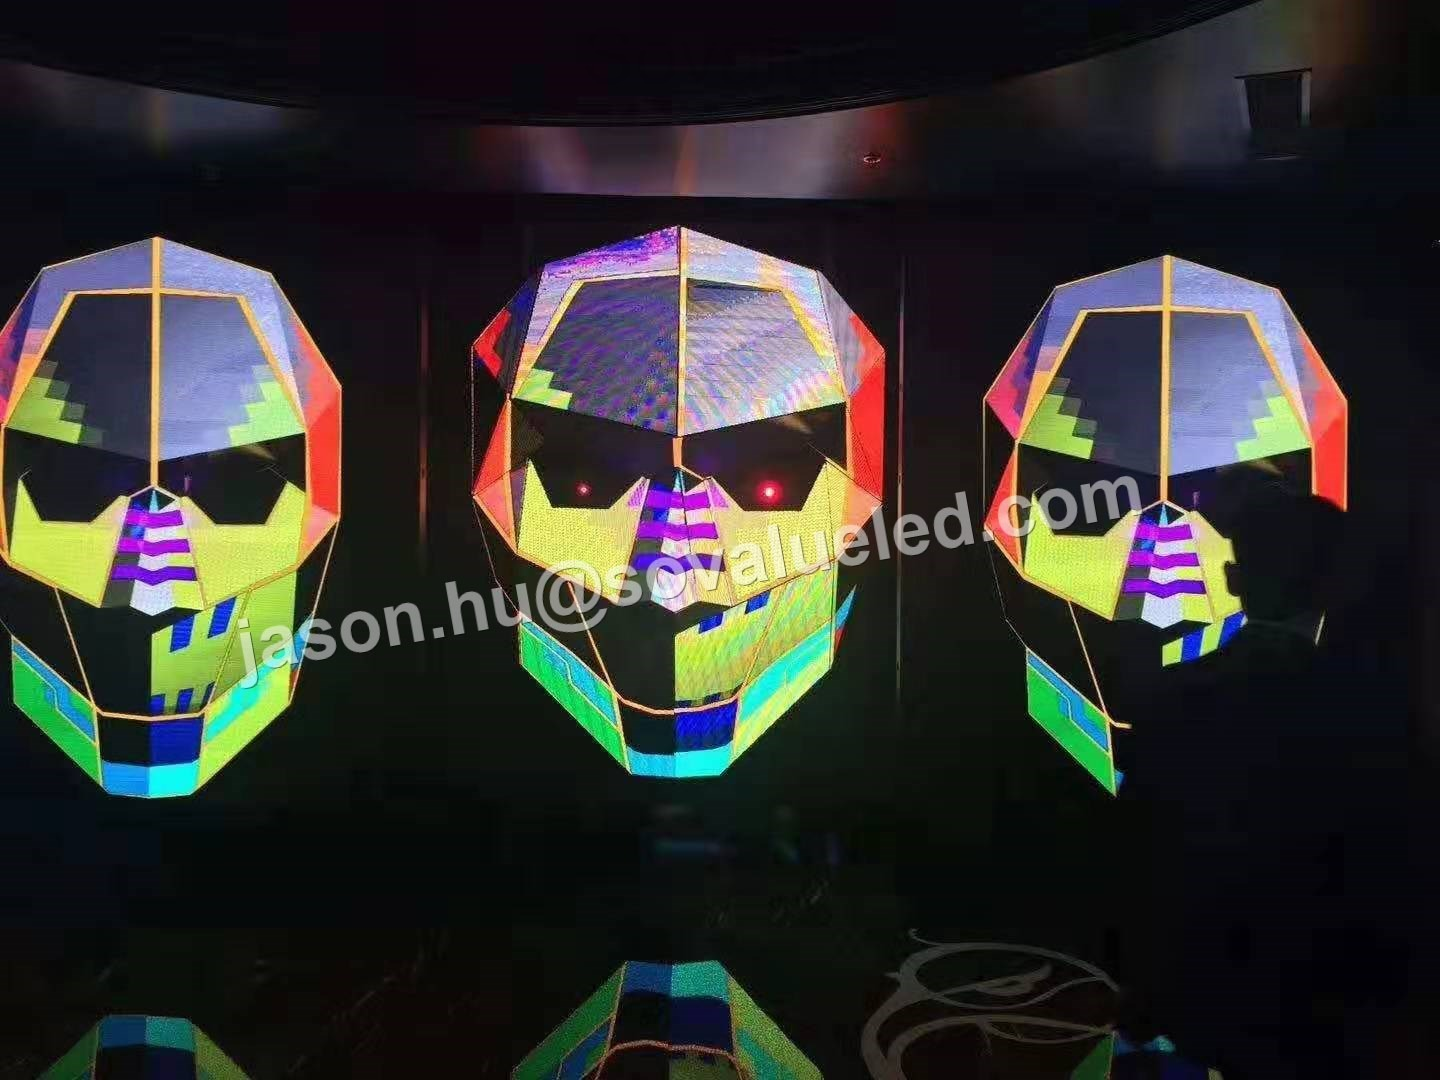 P4 Face LED display